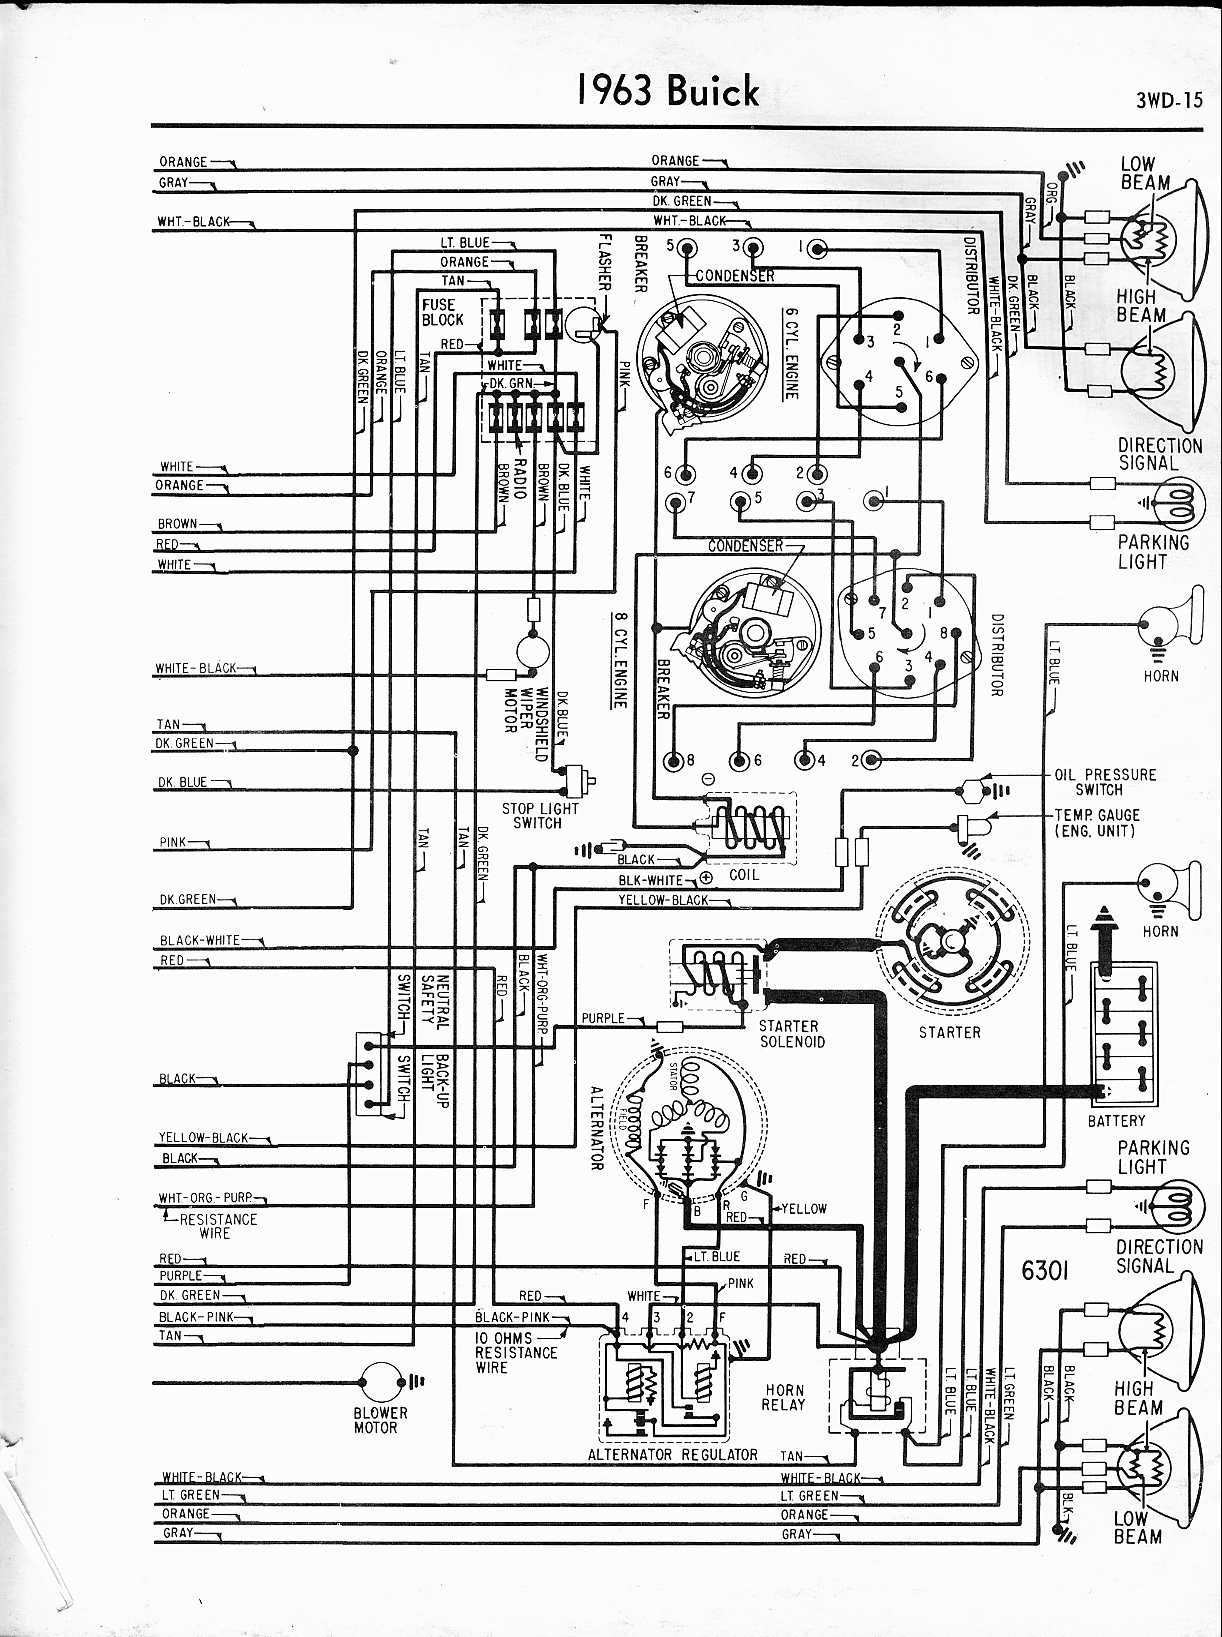 Wiring Diagram Additionally Sabs Trailer Plug Lamp 1963 Buick Automotive Diagrams Rh Autonomia Co